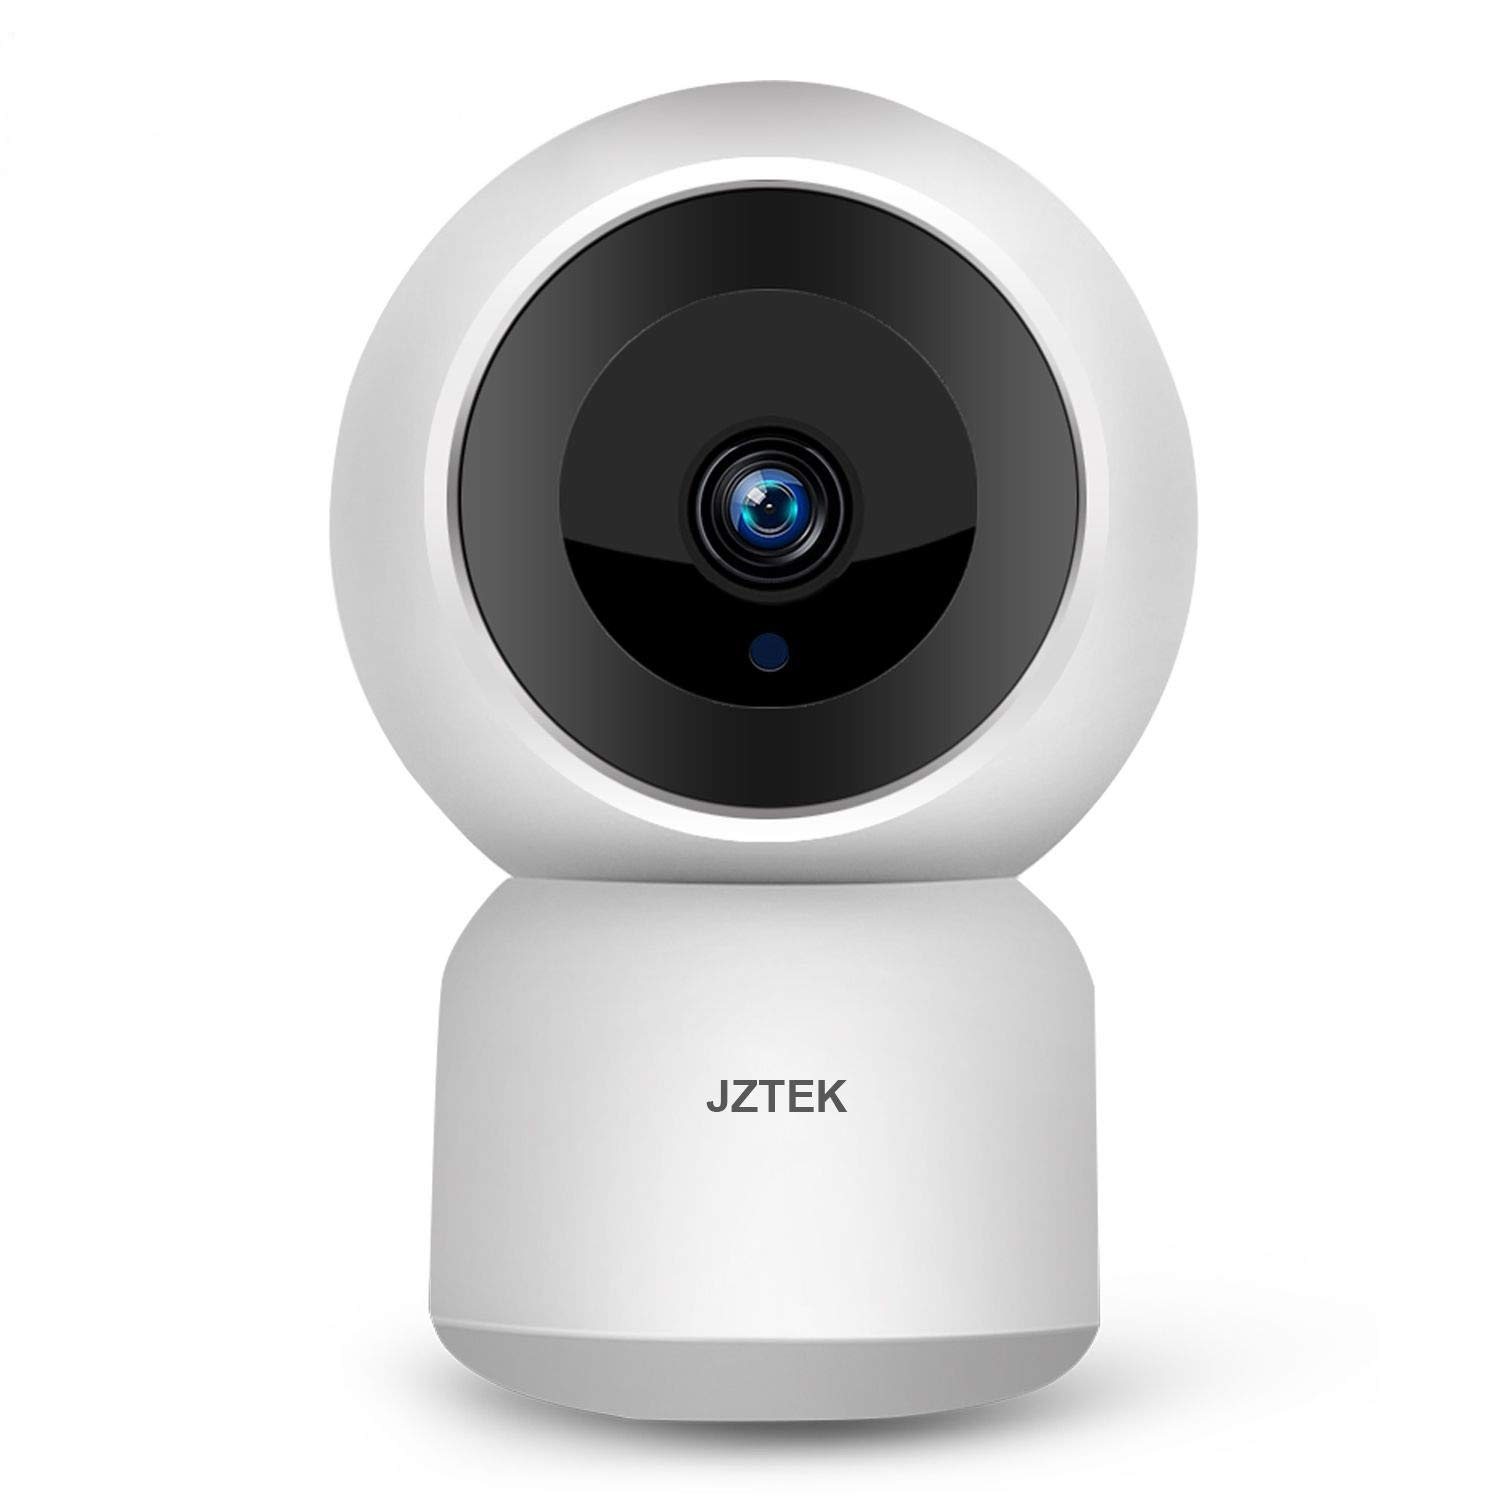 WiFi Dog IP Camera 1080P, JZTEK Smart Wireless Cam Pan/Tilt/Zoom with Cloud Service 3D Image Touch Navigation Panoramic View Night Vision, Two-Way Audio, Motion Detection for Elder,Baby,Pet by JZTEK (Image #1)